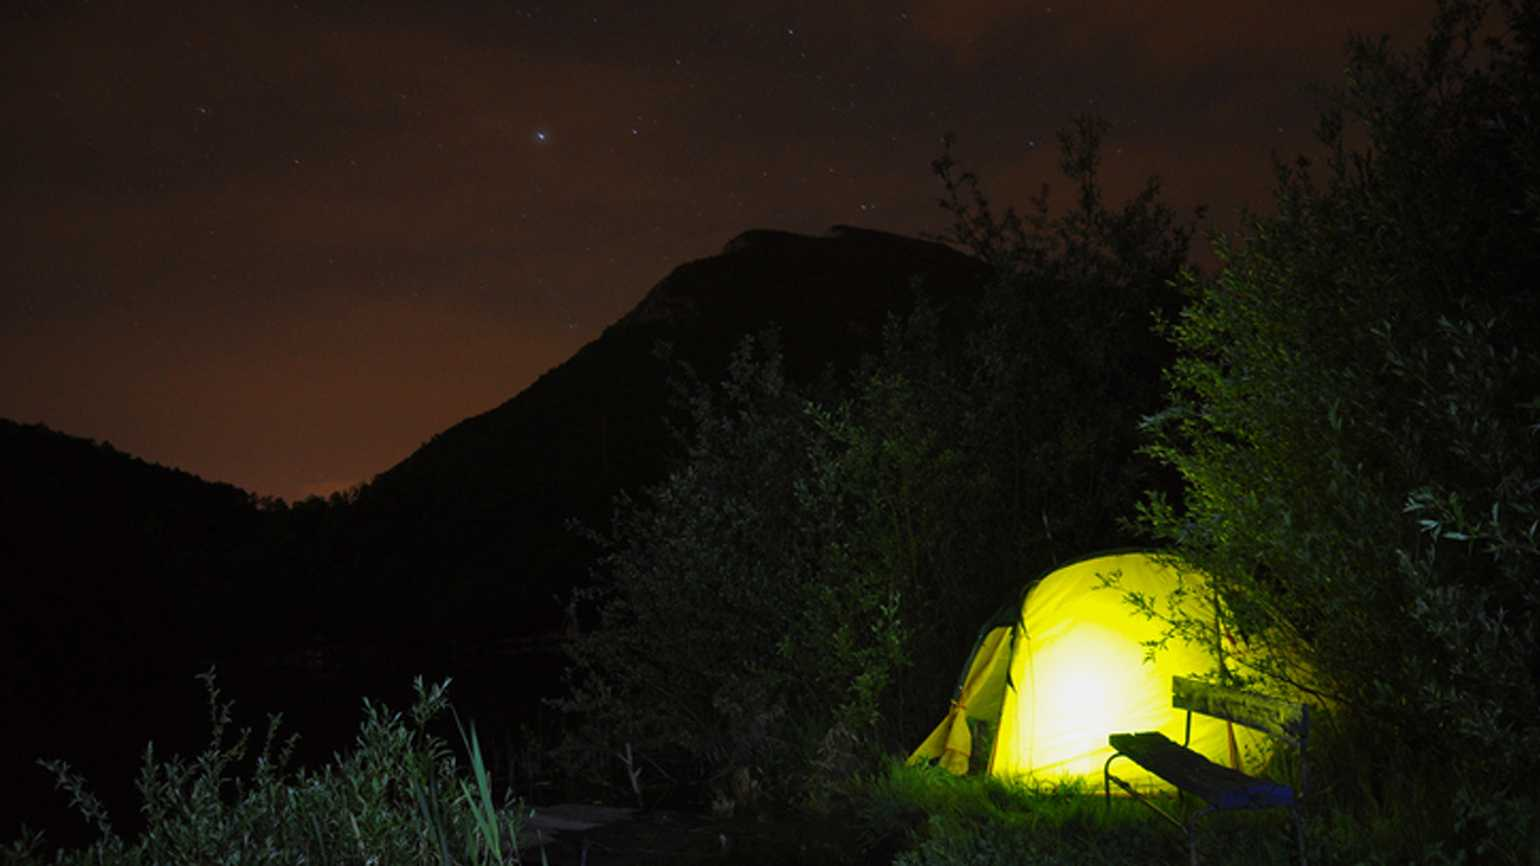 Mountainous landscape with illuminated camping tent